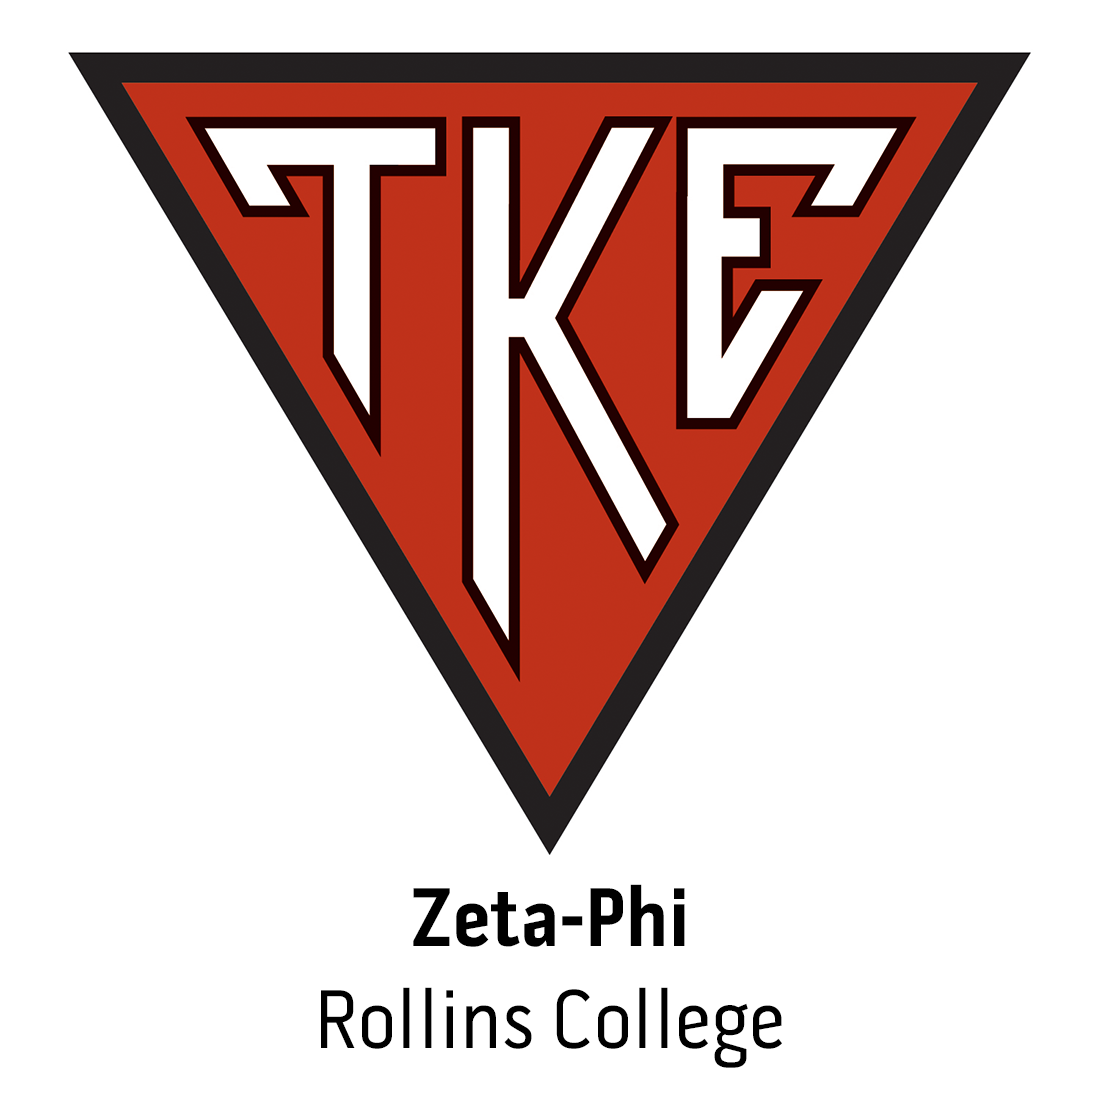 Zeta-Phi Chapter at Rollins College